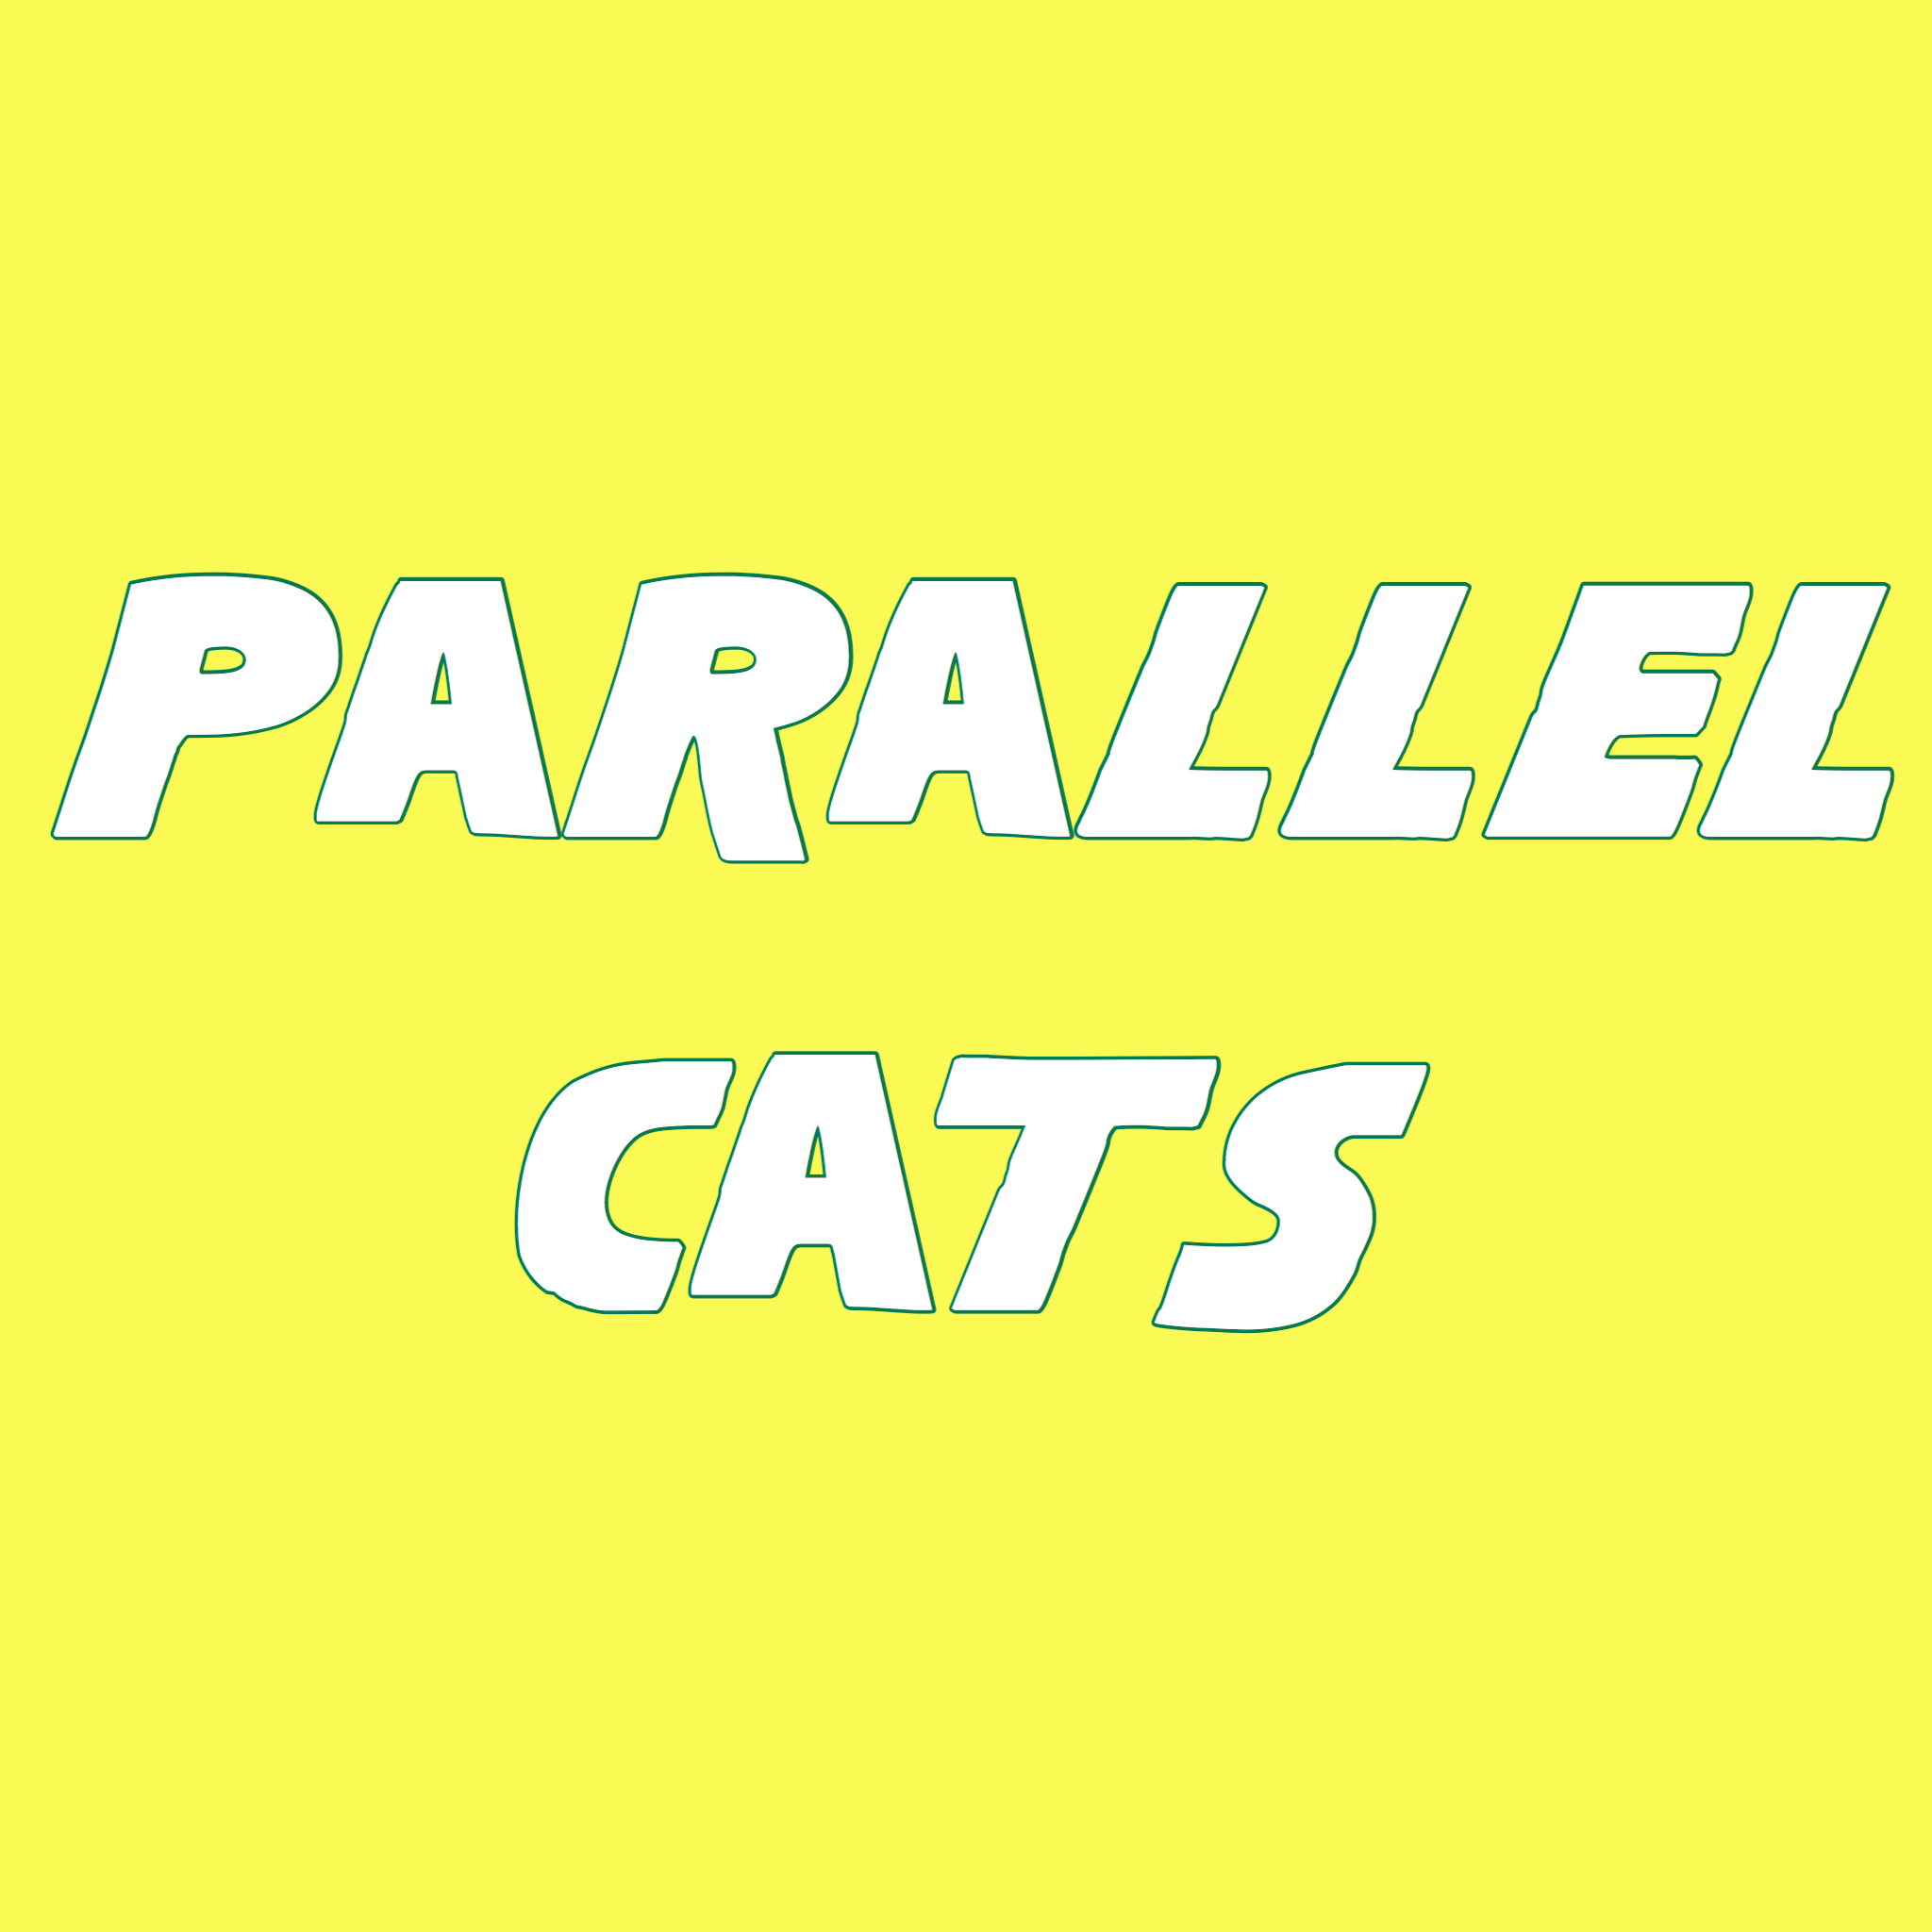 parallel cats